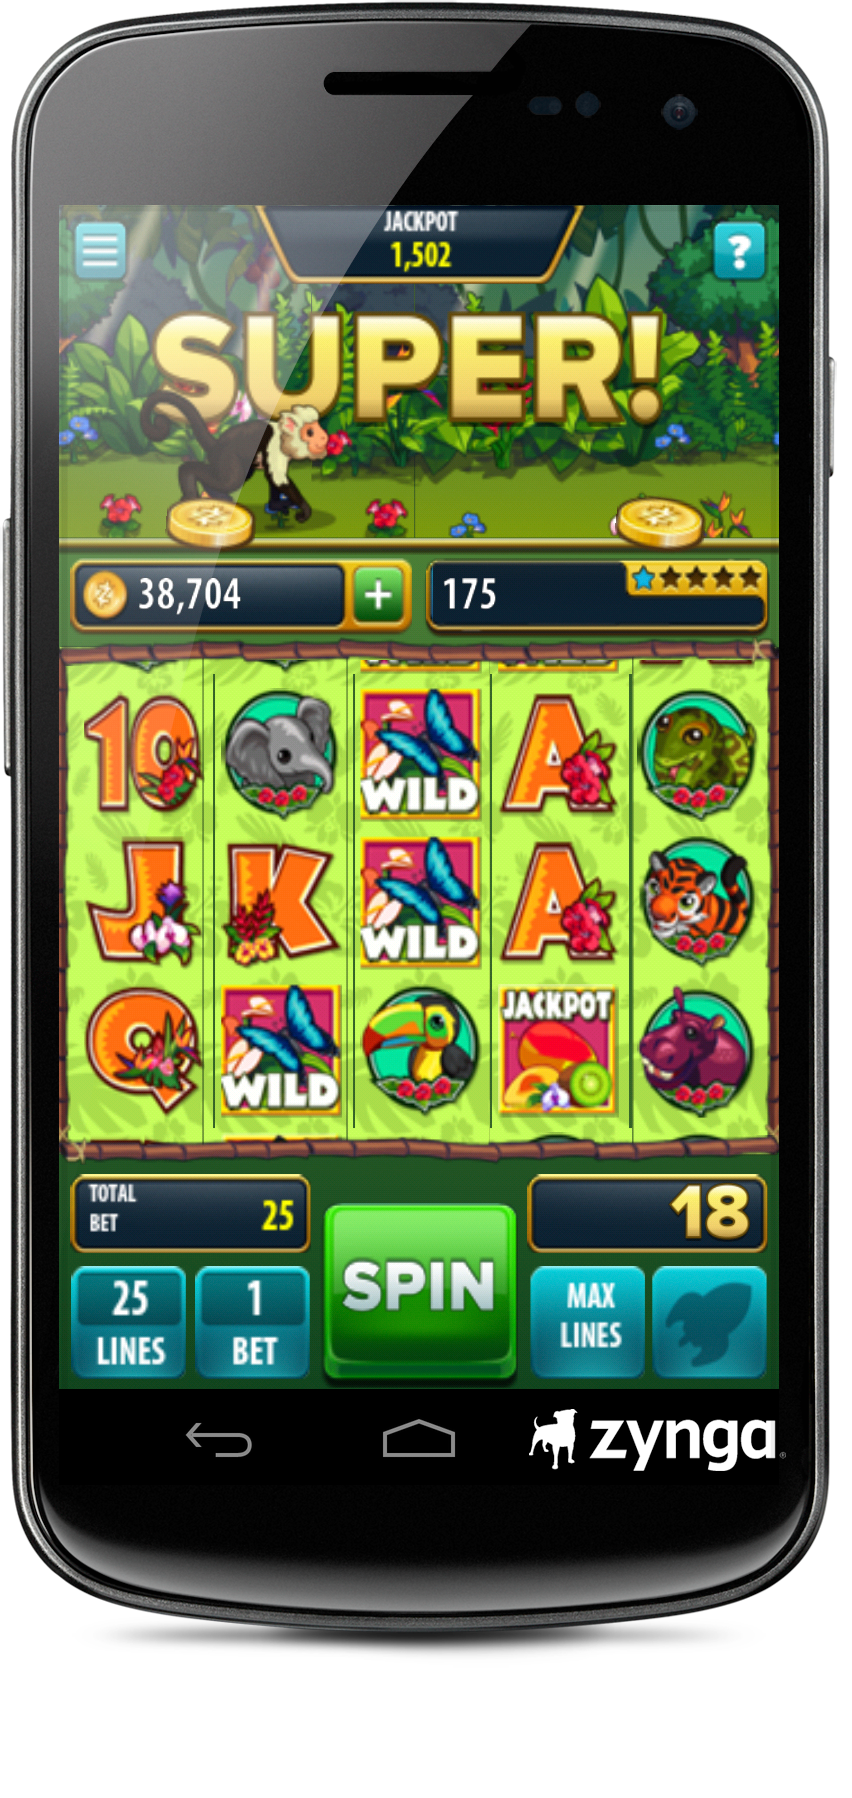 Slots how to win jackpot